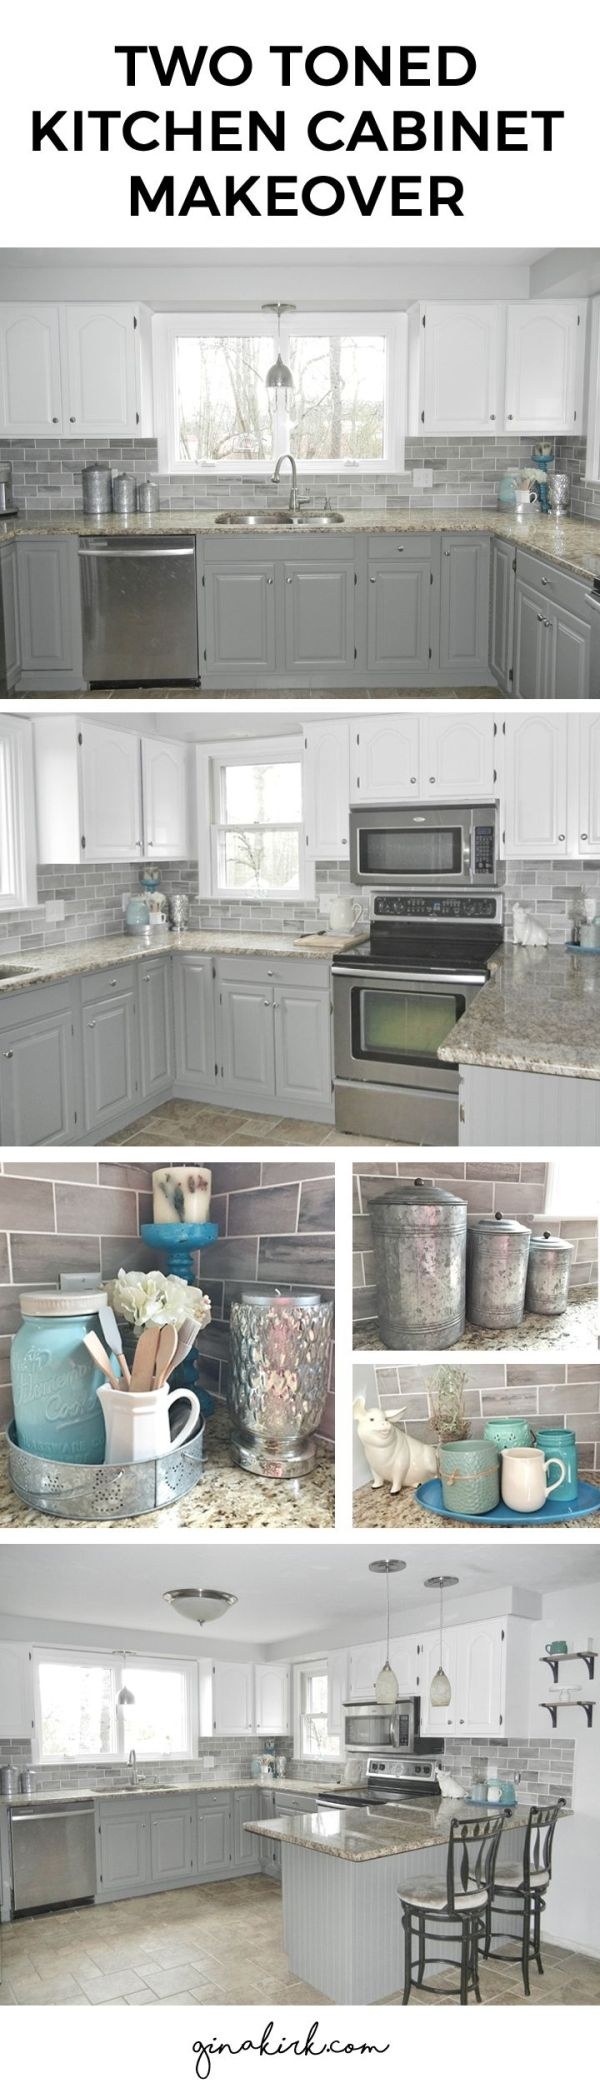 Kitchen cabinet makeover. Oak cabinets to two toned gray and white cabinets (Chelsea Gray and Dove White - Benjamin Moore) Fixer upper inspired design space with subway tile backsplash. Welcome home! ;) by lelia